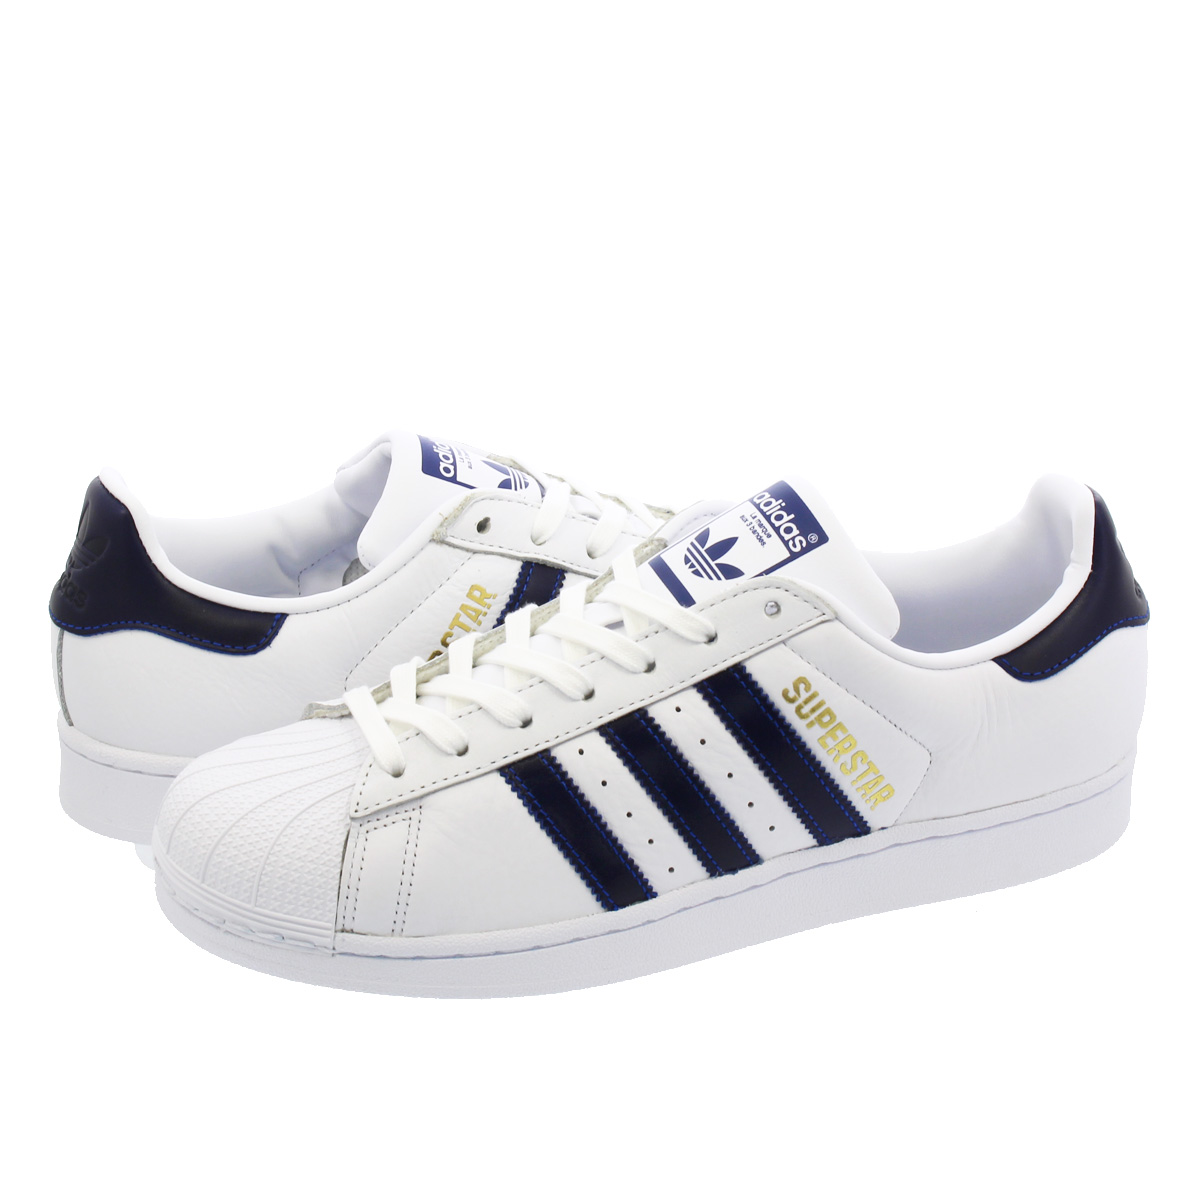 adidas superstar en pana